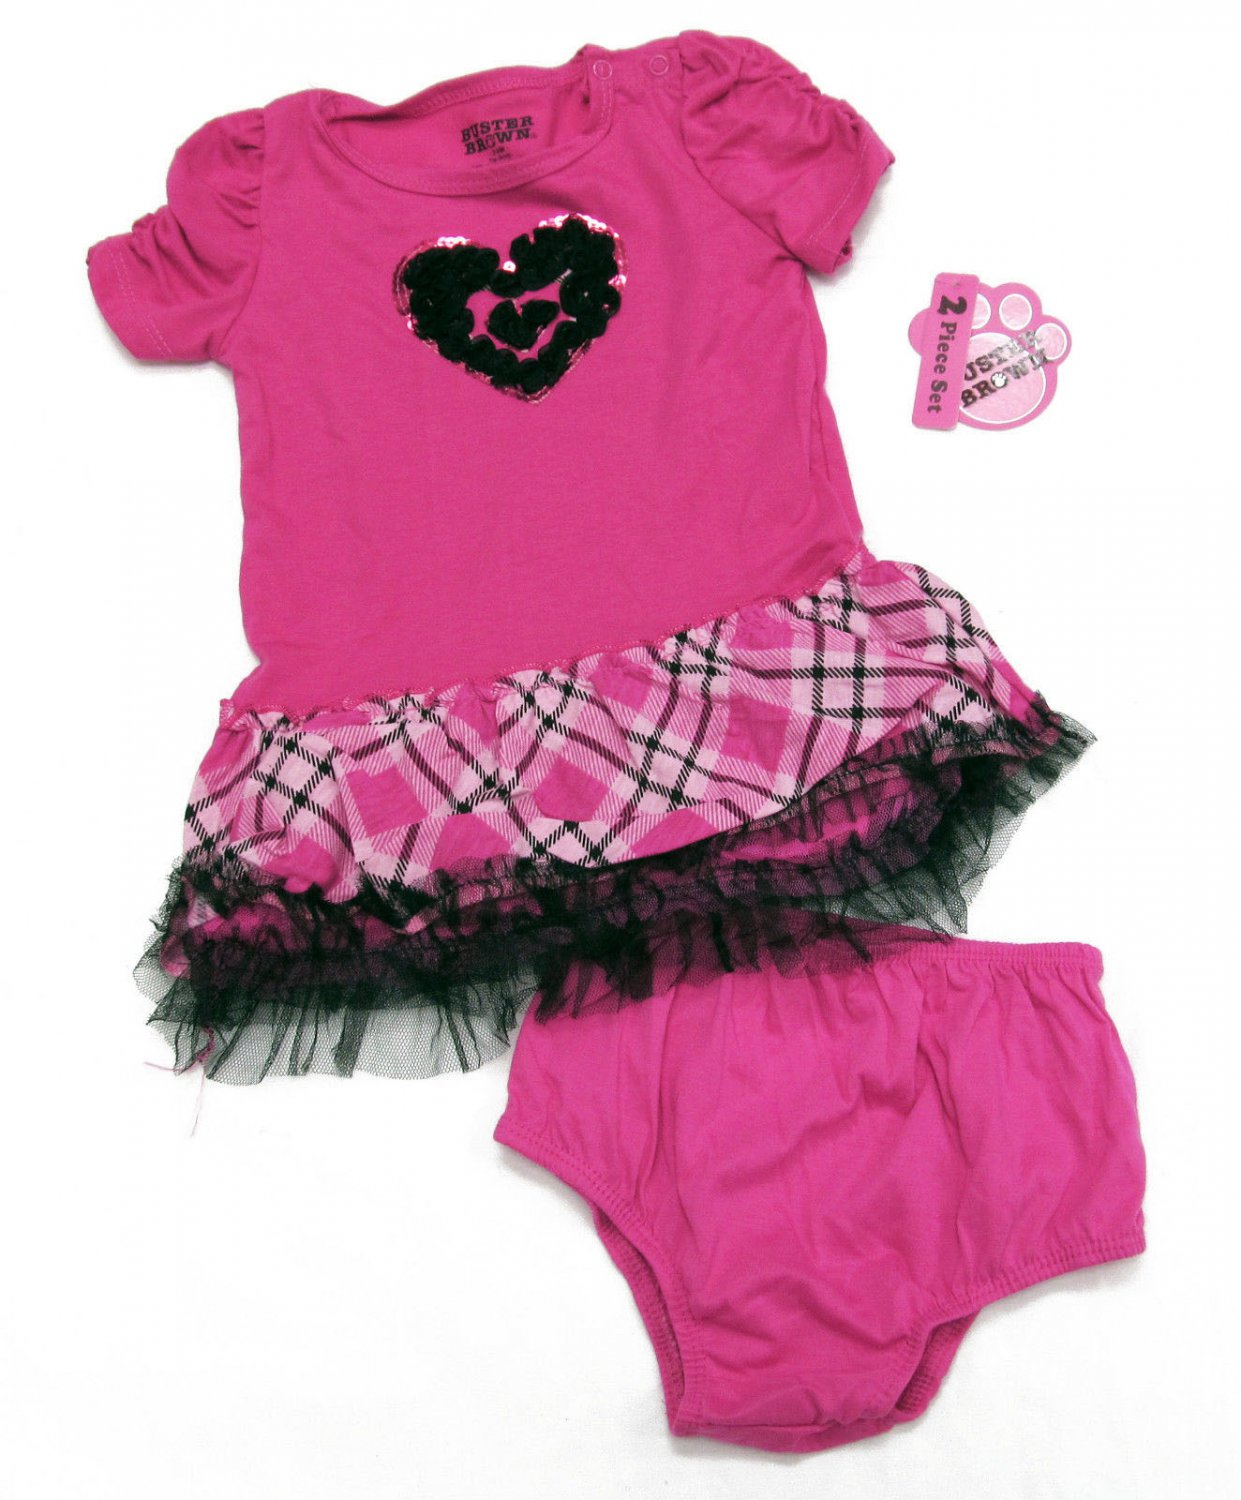 Buster Brown Baby Girls 2-Piece Dress Set Diaper Cover Pink Black Plaid 24 Mos